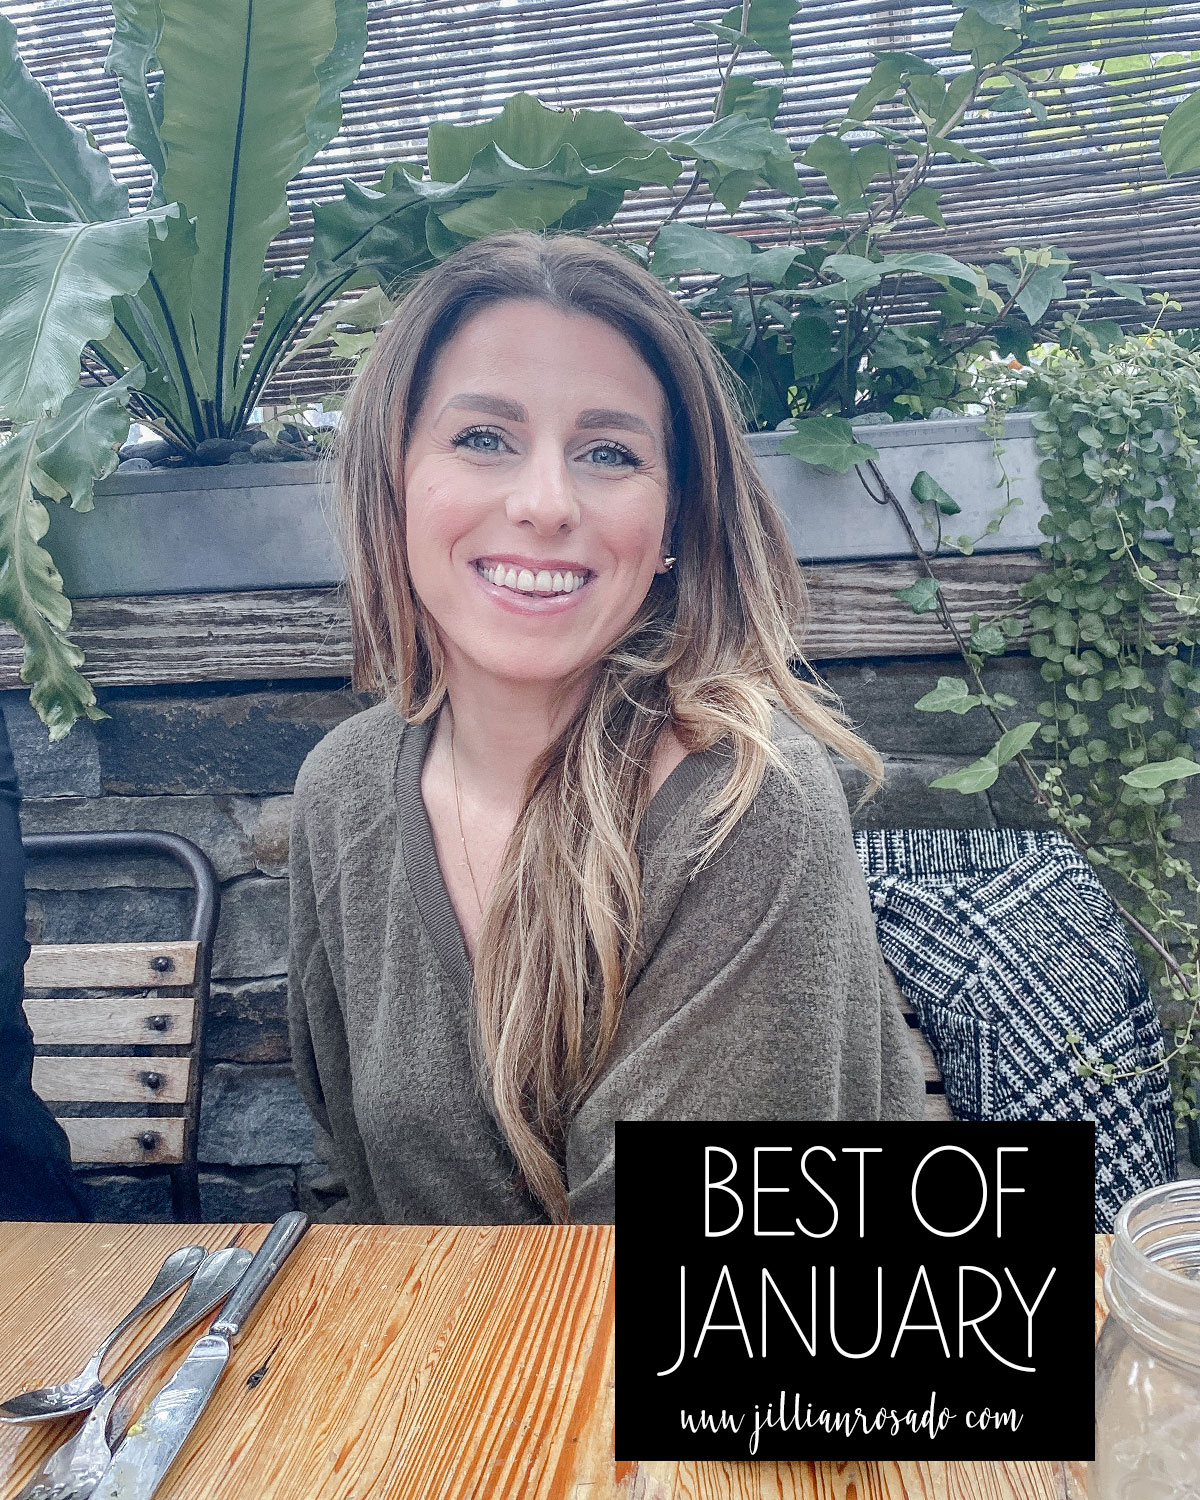 Best Sellers of January 2020 Jillian Rosado